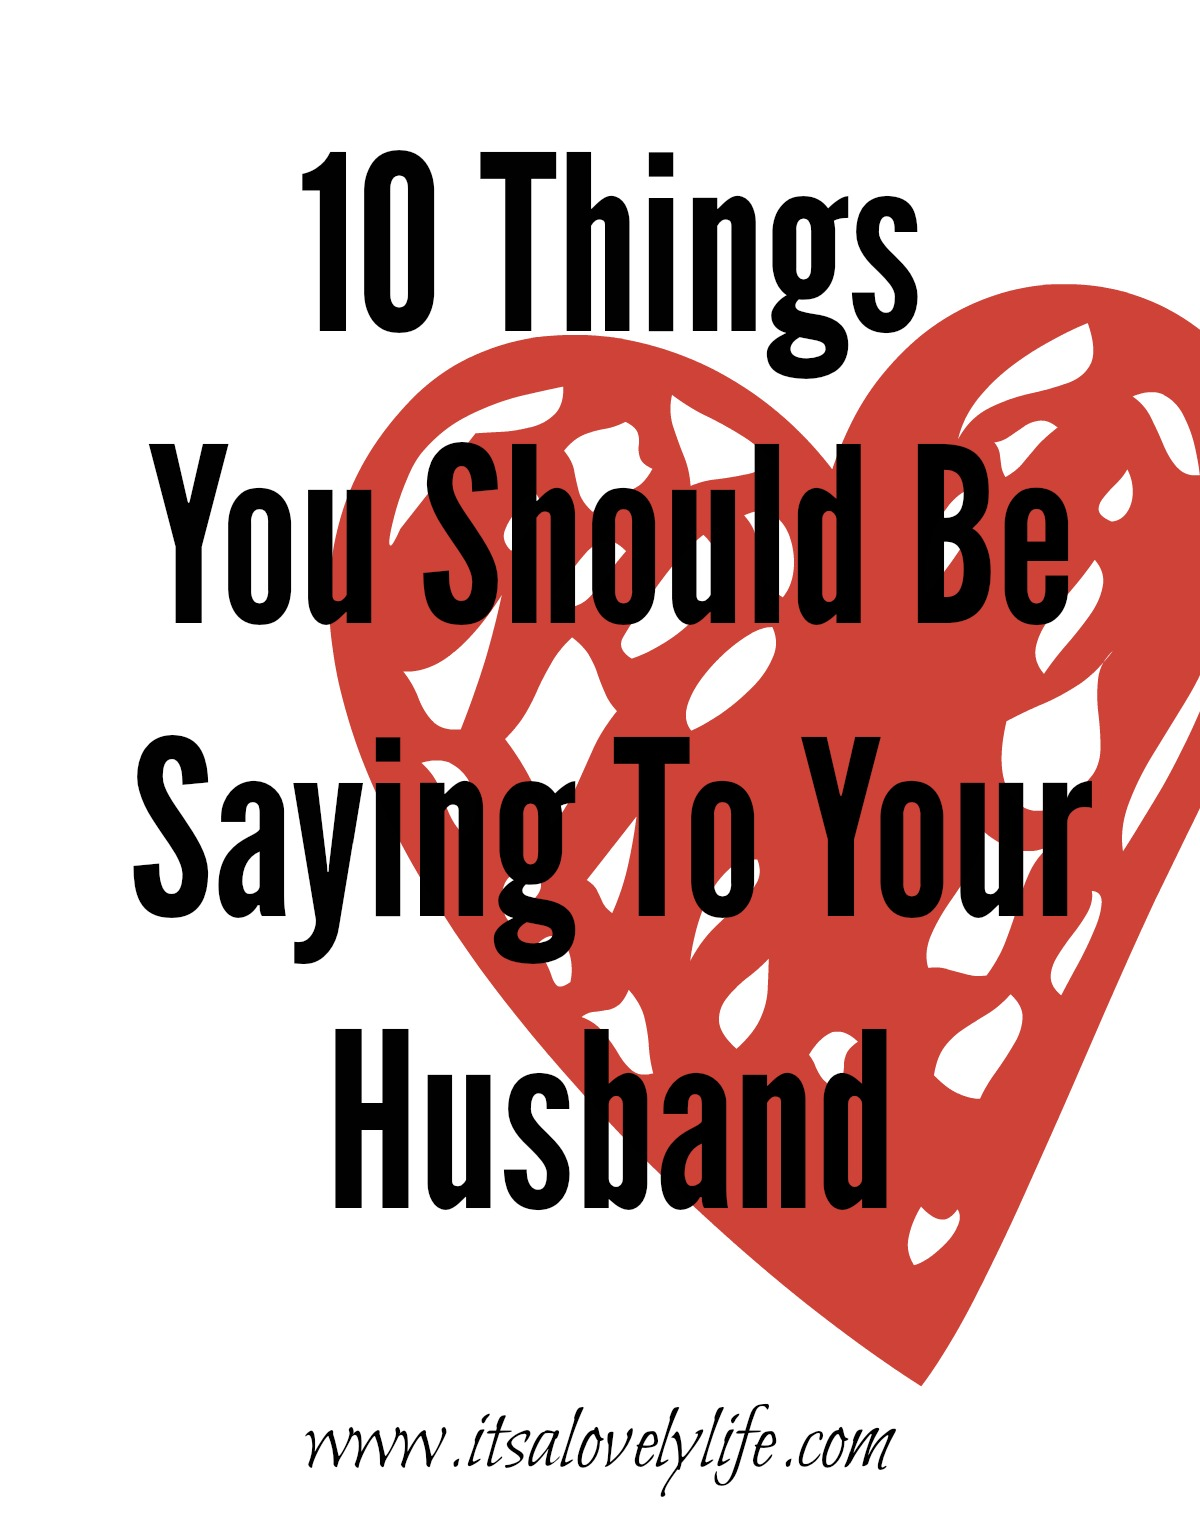 Perverted quotes to say to a guy